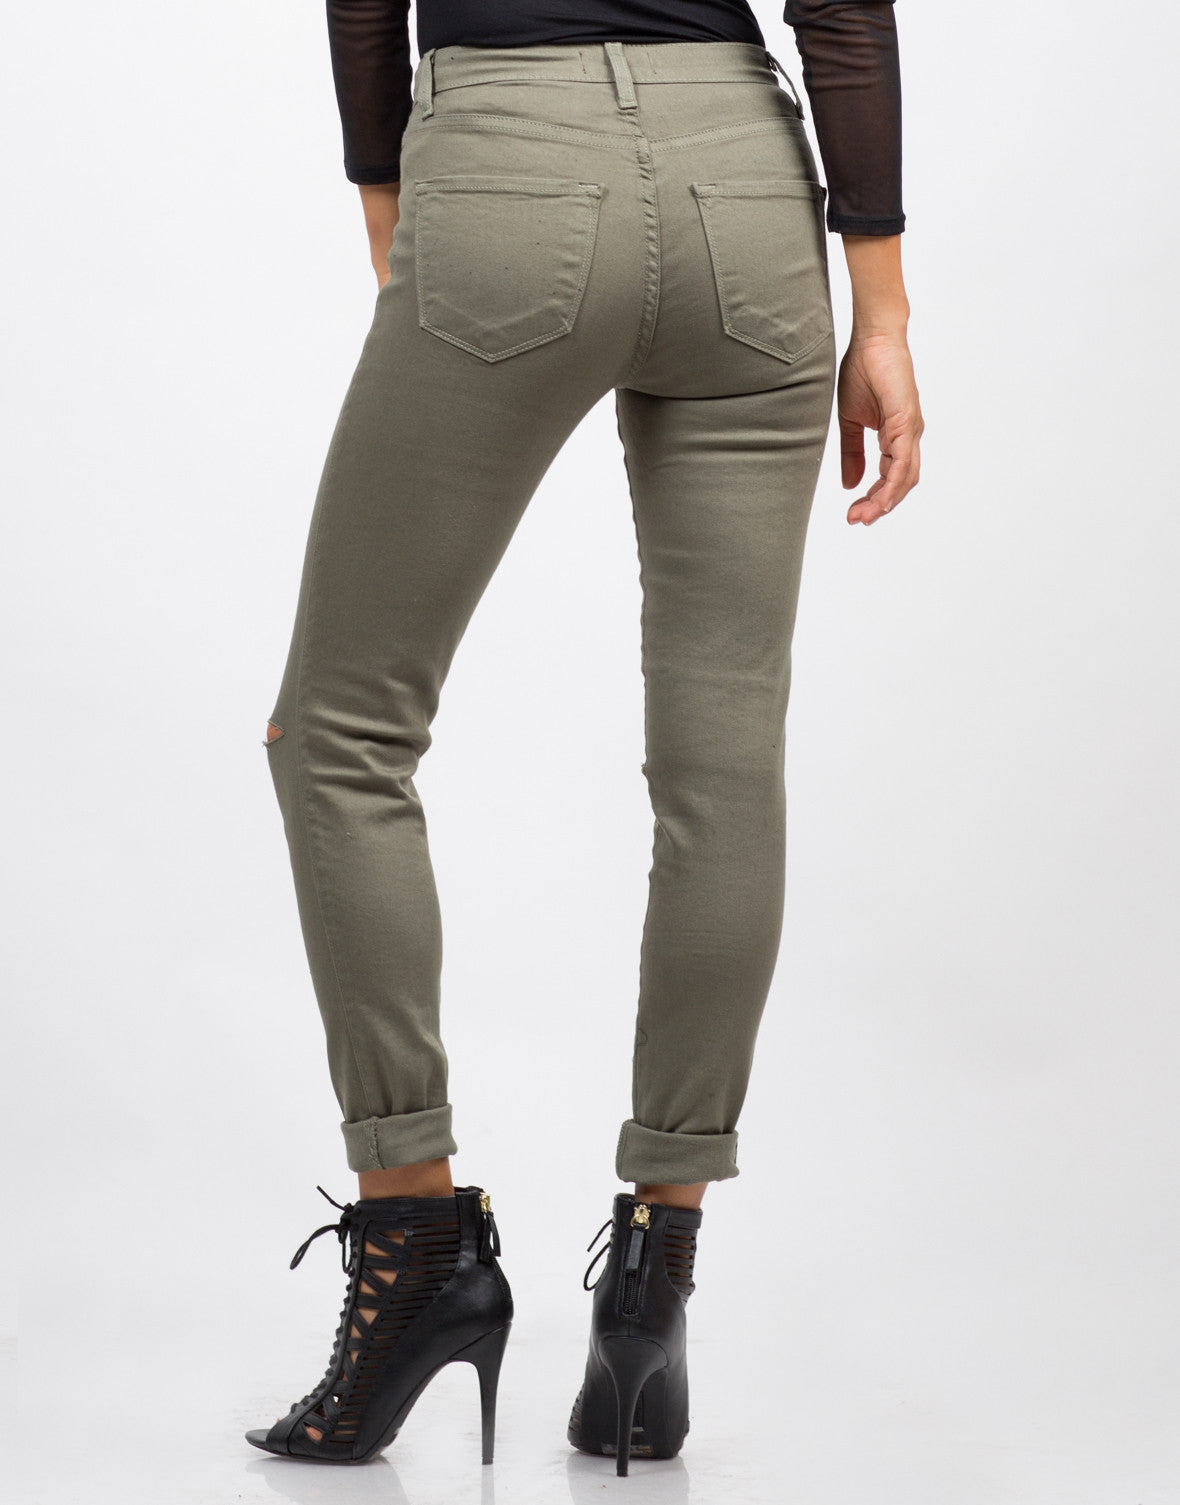 Back View of High Waisted Knee Slit Skinny Pants